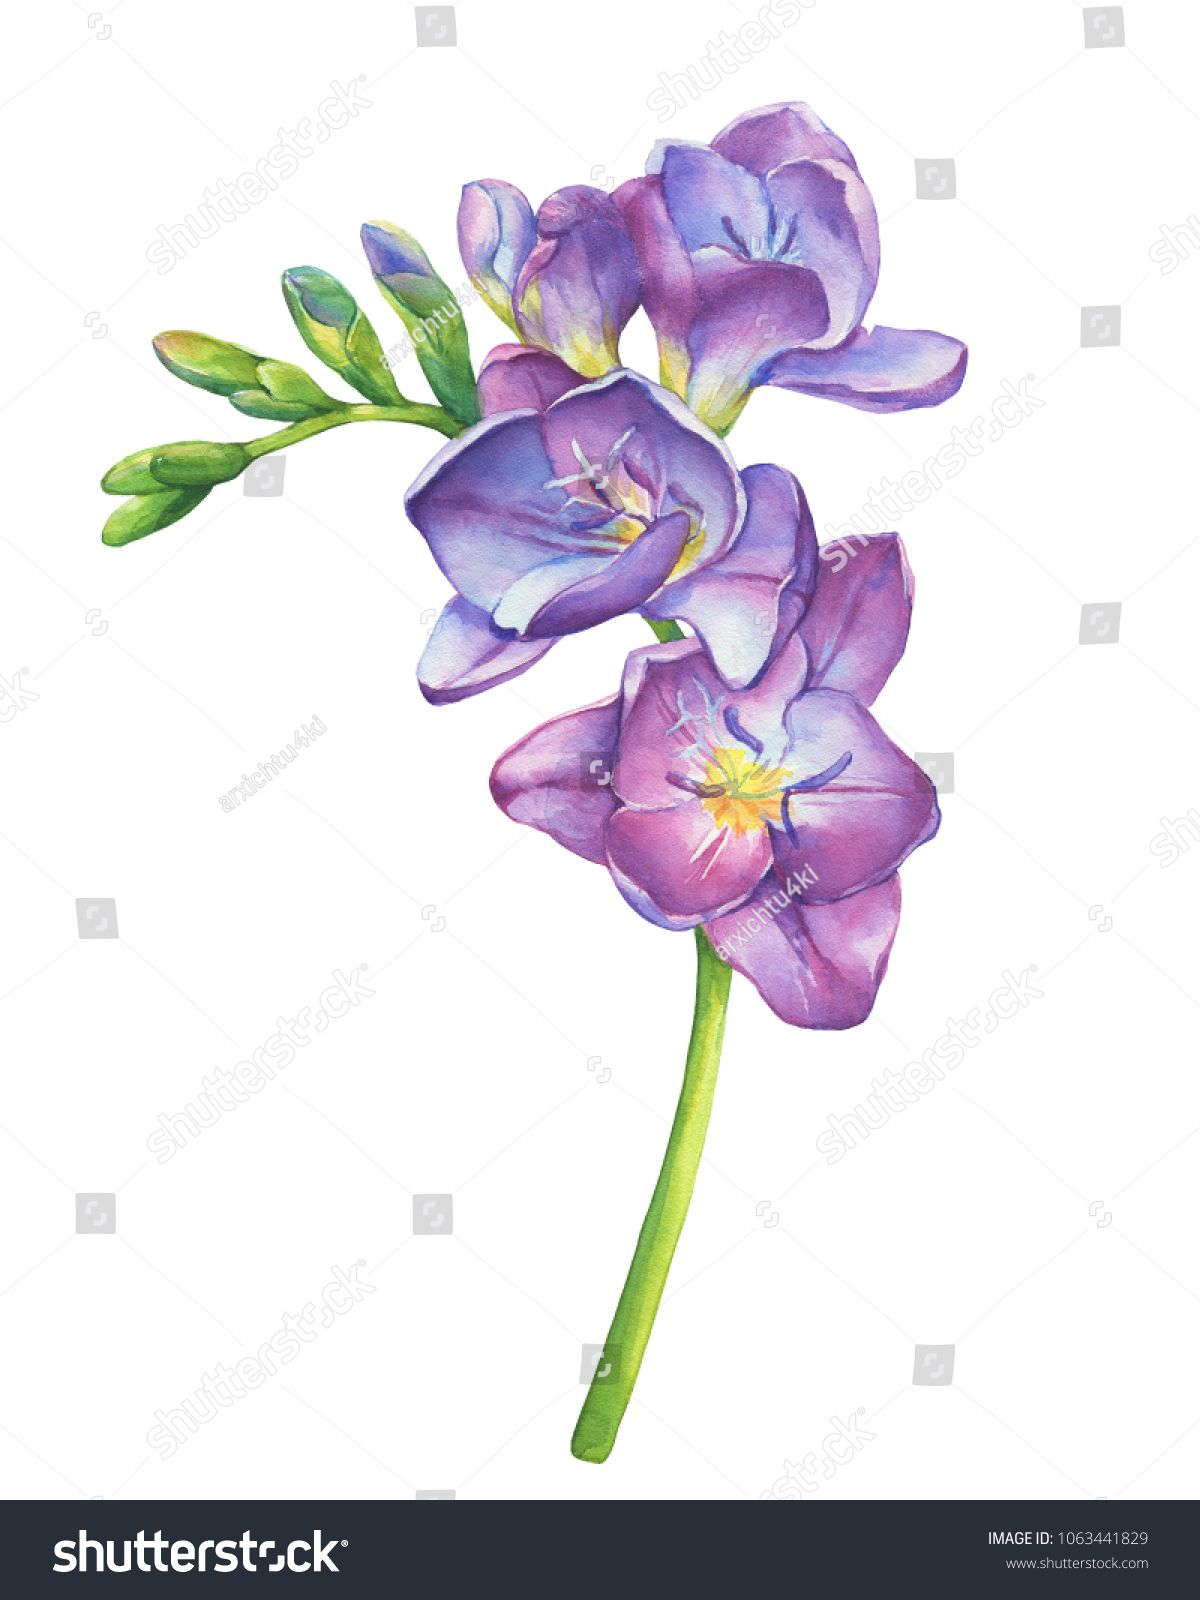 Close Up Of Fresh Branches Violet Freesia Flowers With Buds Perennial Plant Freesia Serrada Floral Botan Flower Painting Flower Art Watercolor Tattoo Flower